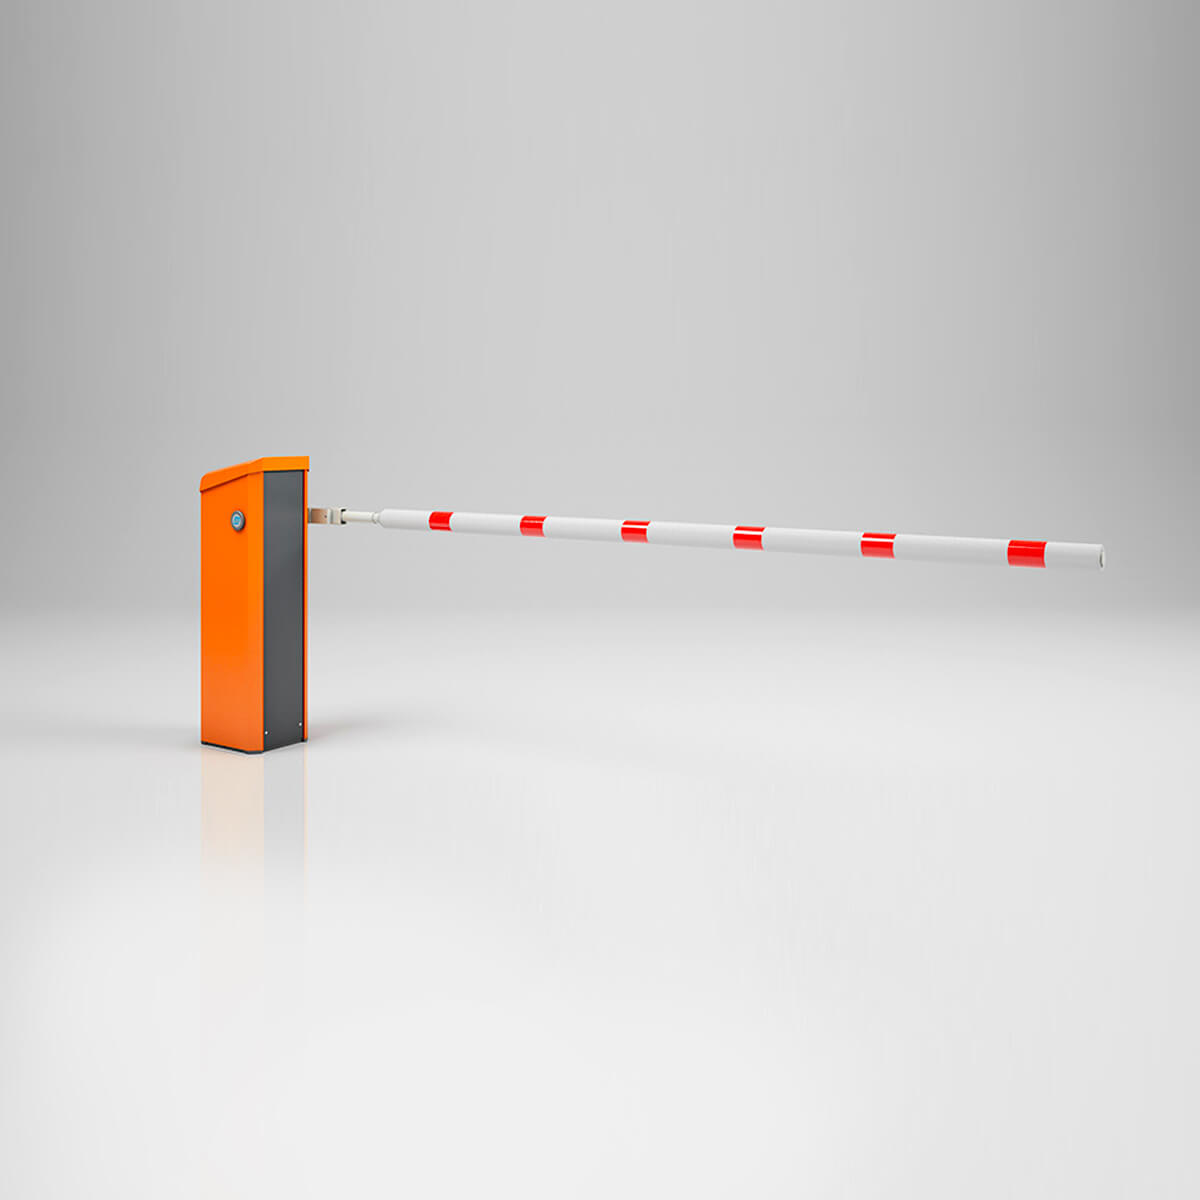 Get Magnetic Toll High speed Barriers in UAE, Qatar and Saudi Arabia